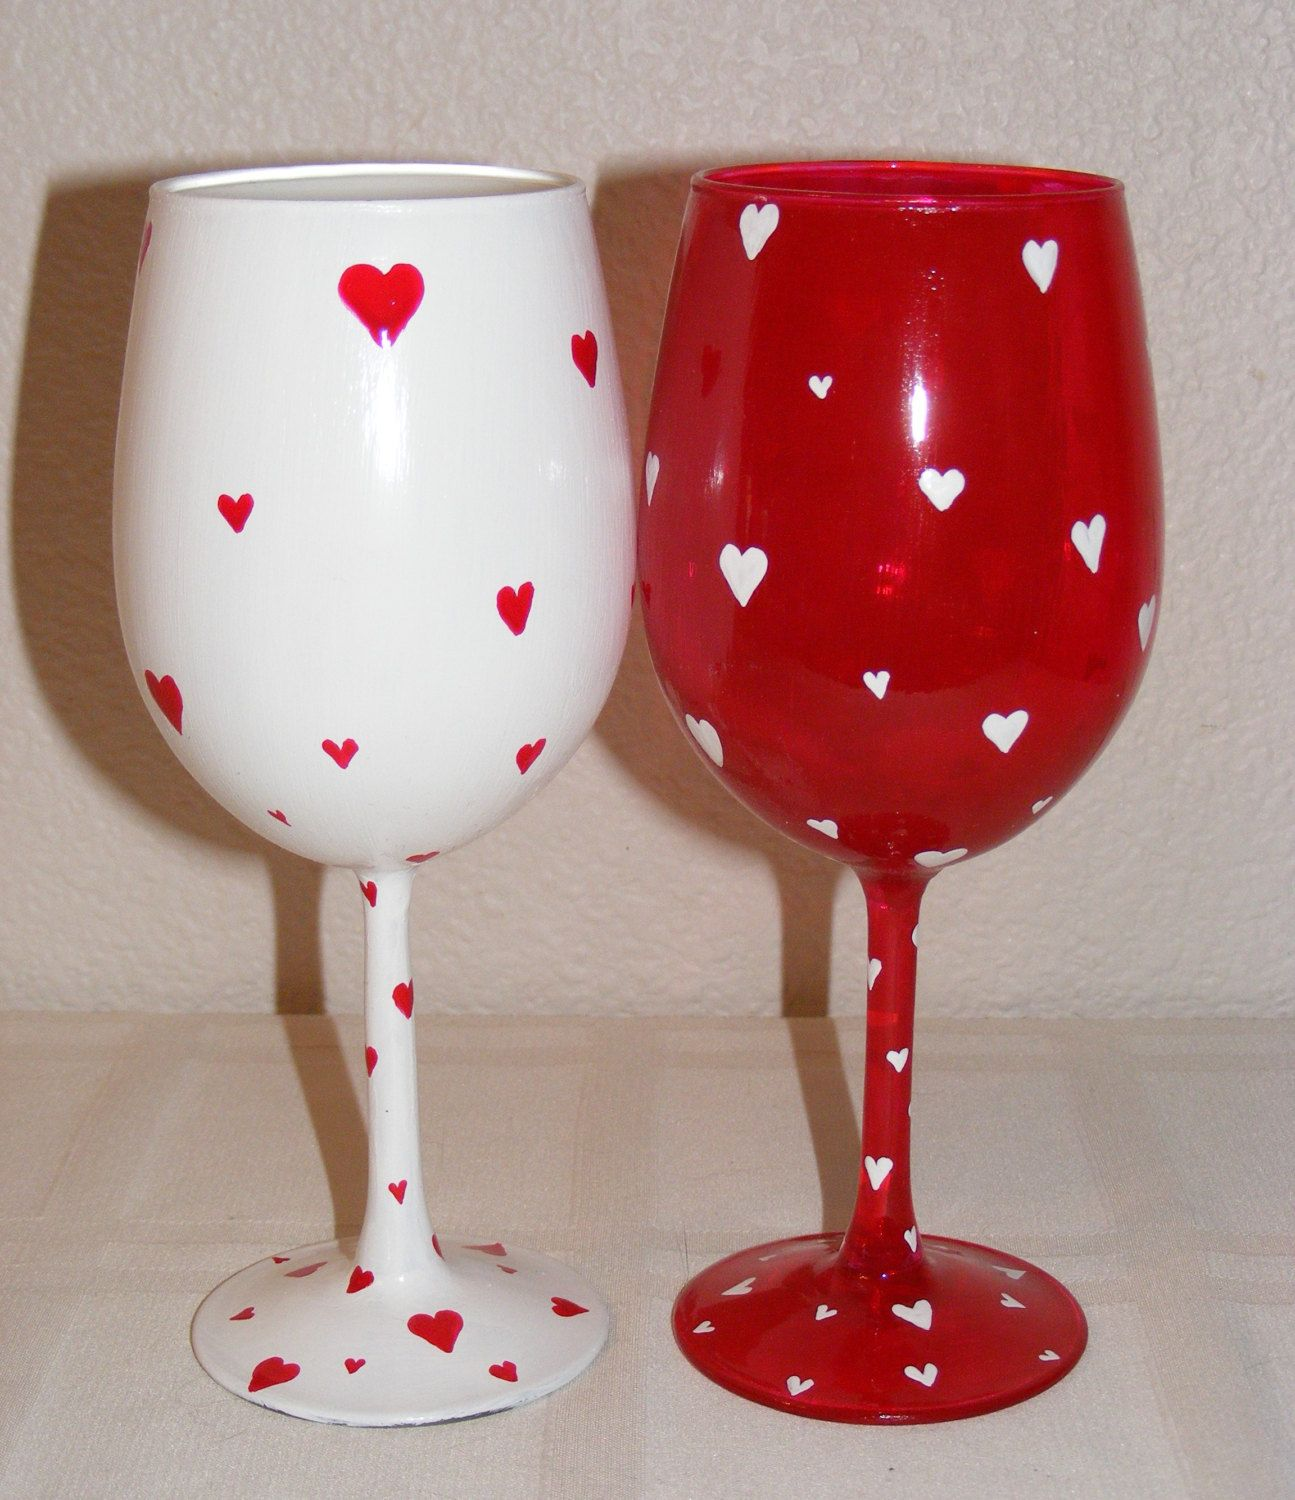 Red And White Hand Painted Asymmetrical Heart Valentine Wine Glasses One Pair 25 00 Via Etsy Wine Glass Designs Hand Painted Wine Glasses Wine Glass Crafts